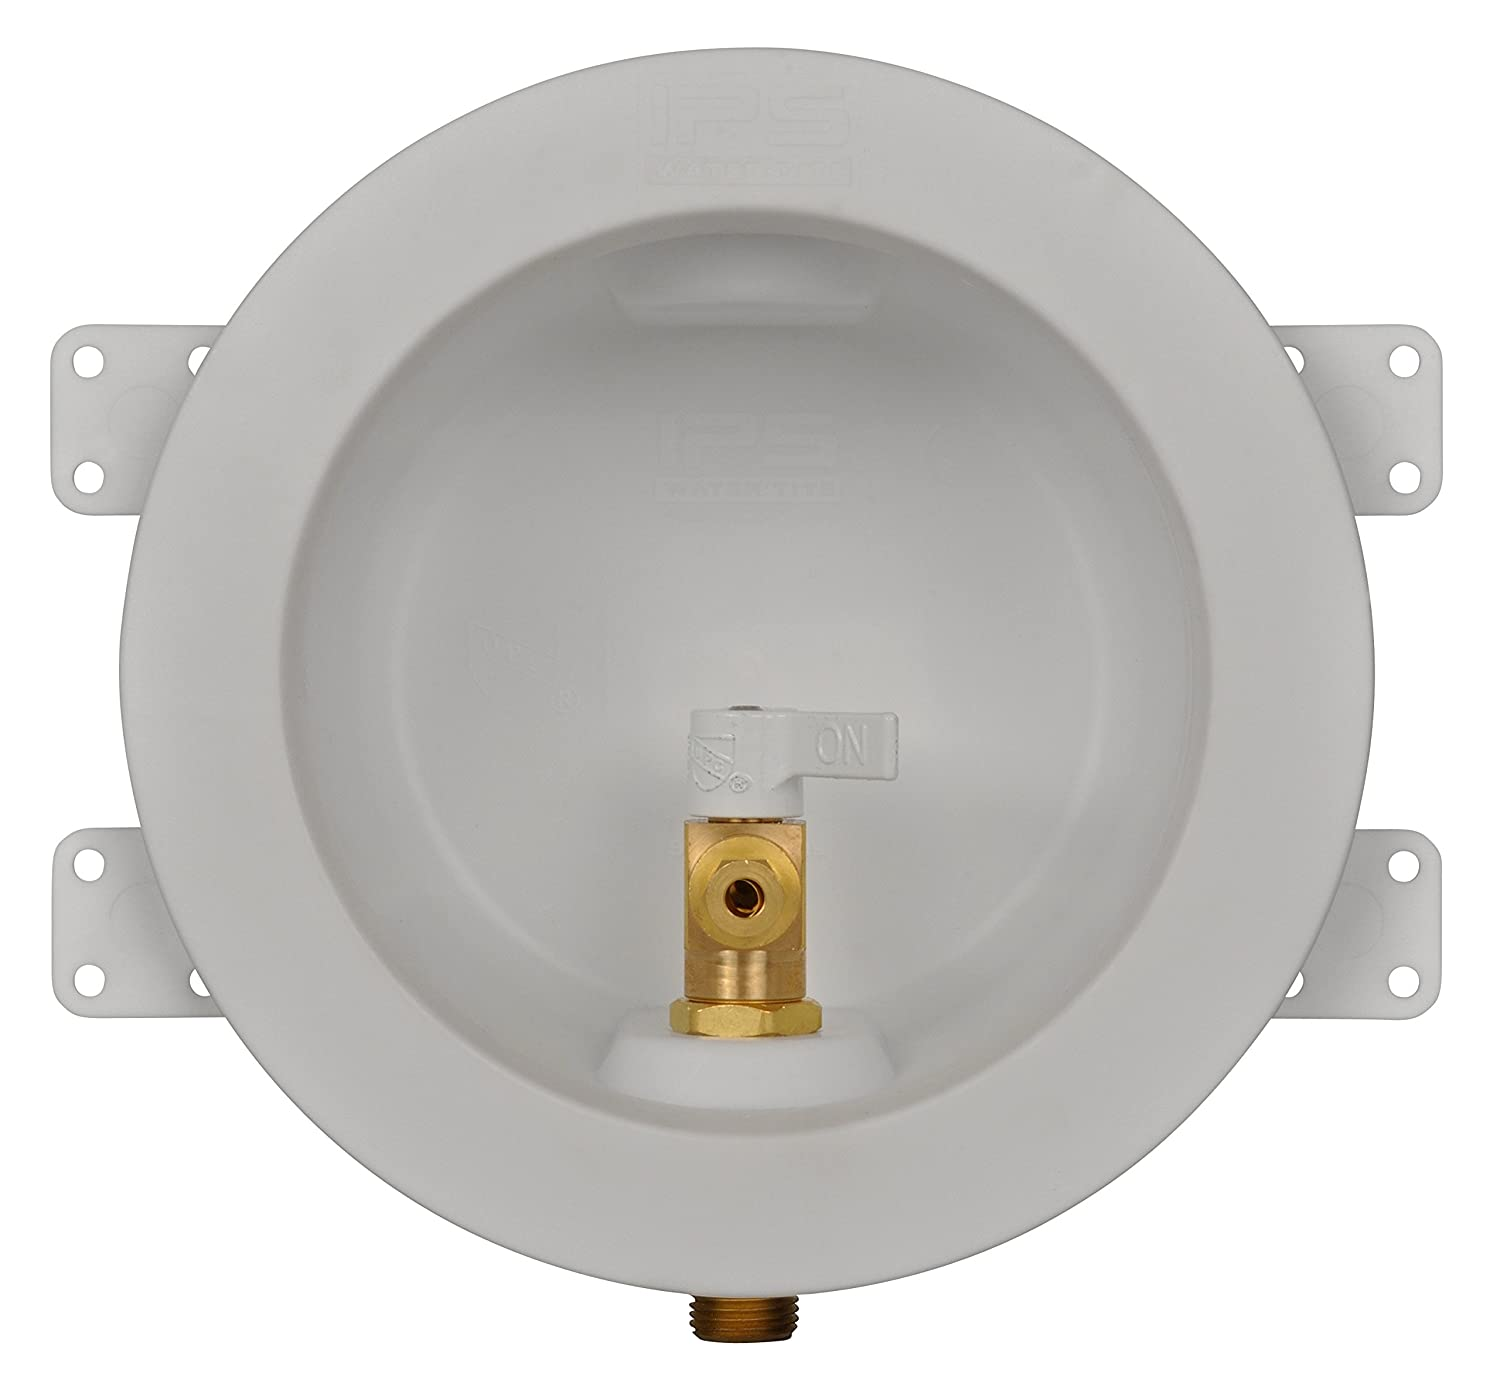 1//2 PEX Connection White Water-Tite 87980 Plastic Lead-Free Ice Maker Outlet Box with Brass Quarter-Turn Arrester Valve Installed